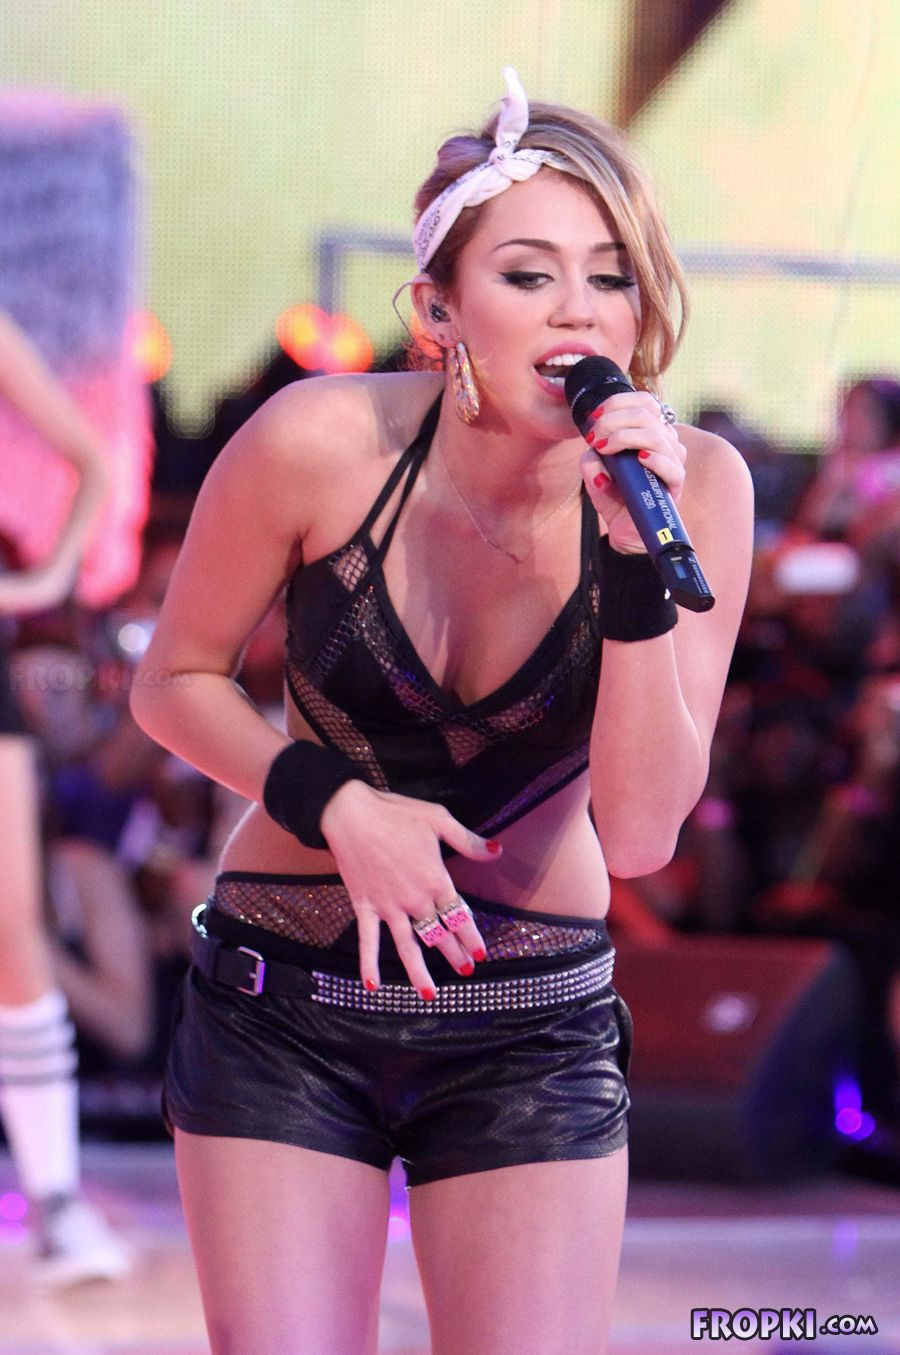 Miley Cyrus shows her naughty side - Page 2 AdrRd0Lx